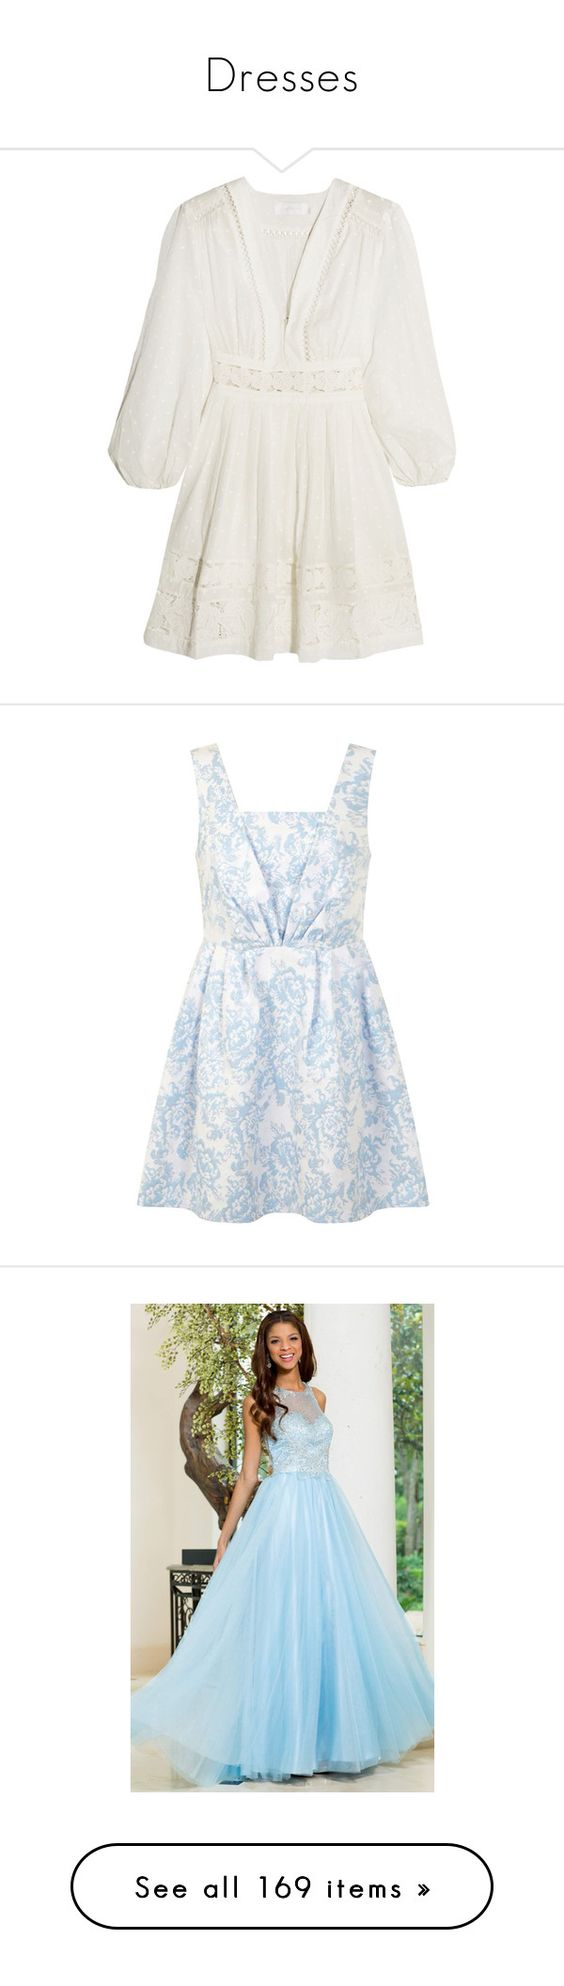 """Dresses"" by graciegrove ❤ liked on Polyvore featuring dresses, white fit and flare dress, white sleeve dress, fit and flare summer dresses, sleeved dresses, white dress, blue, petite, floral prom dresses and jacquard dress"